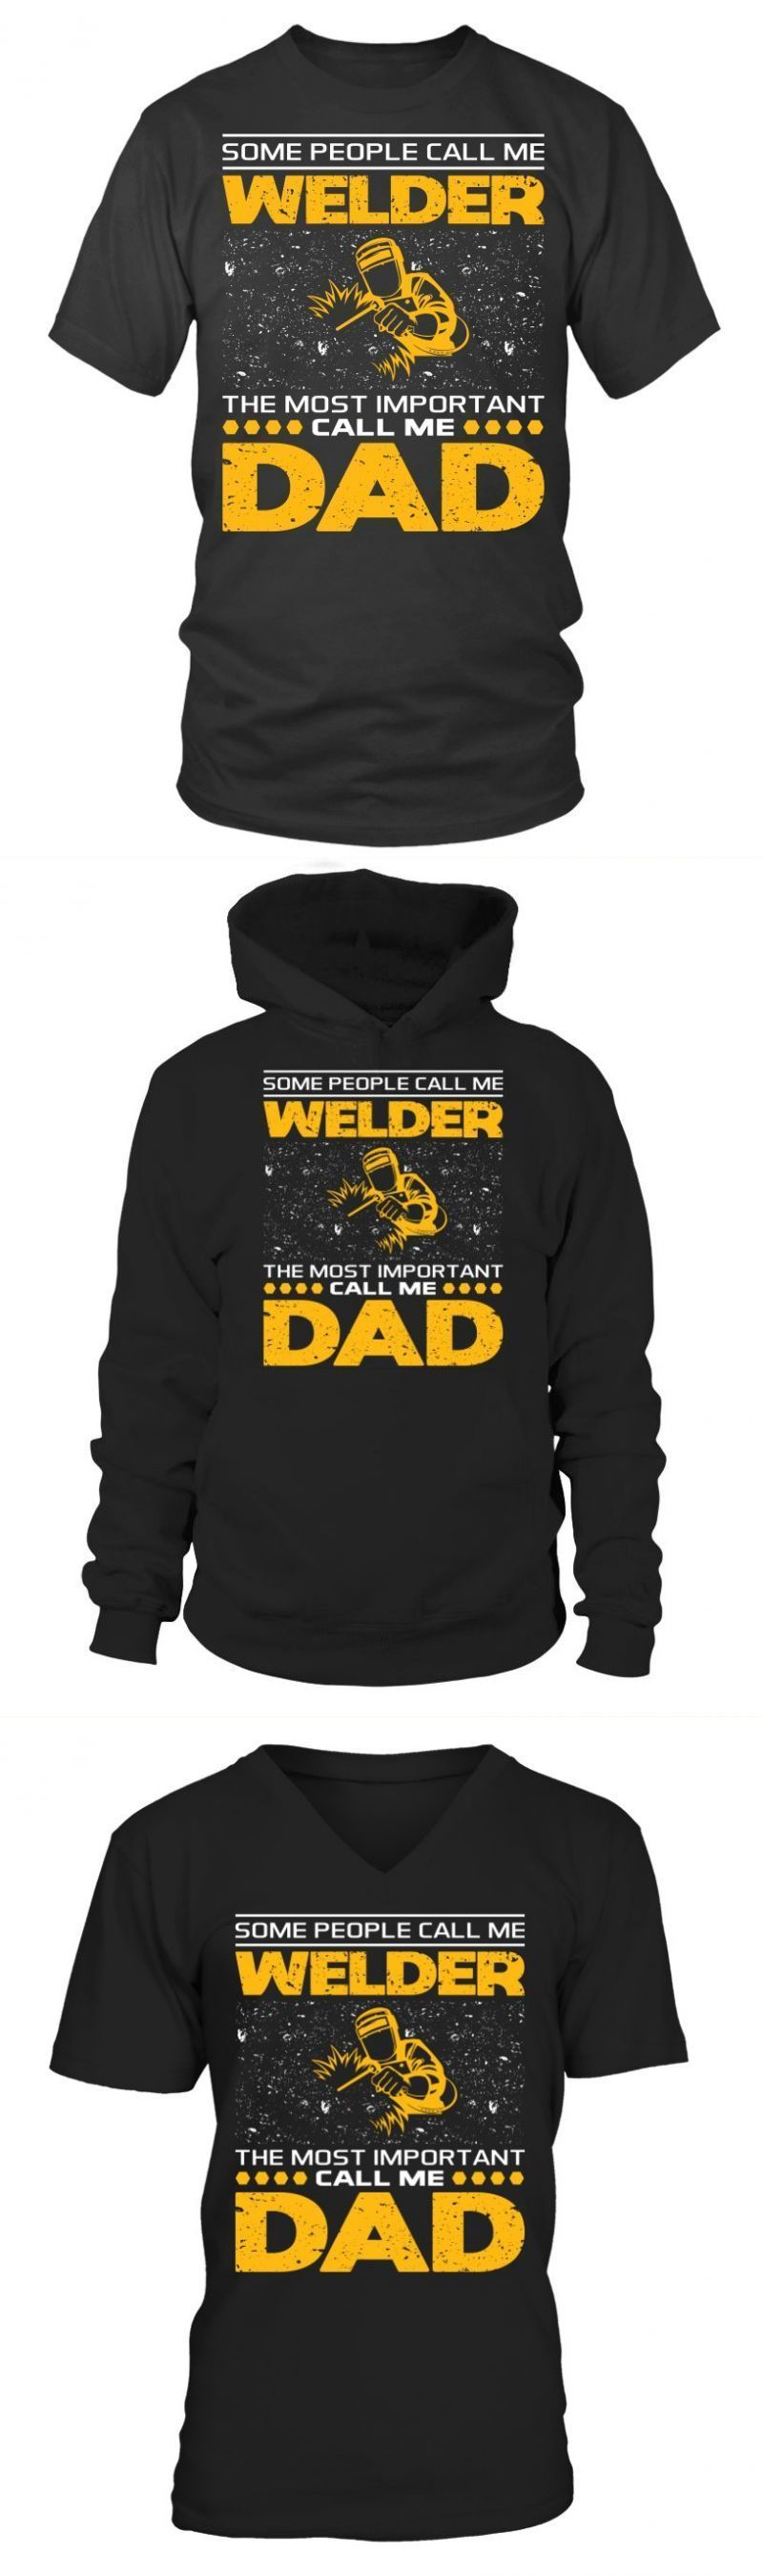 Some people call me welder t shirt for dad fathers day